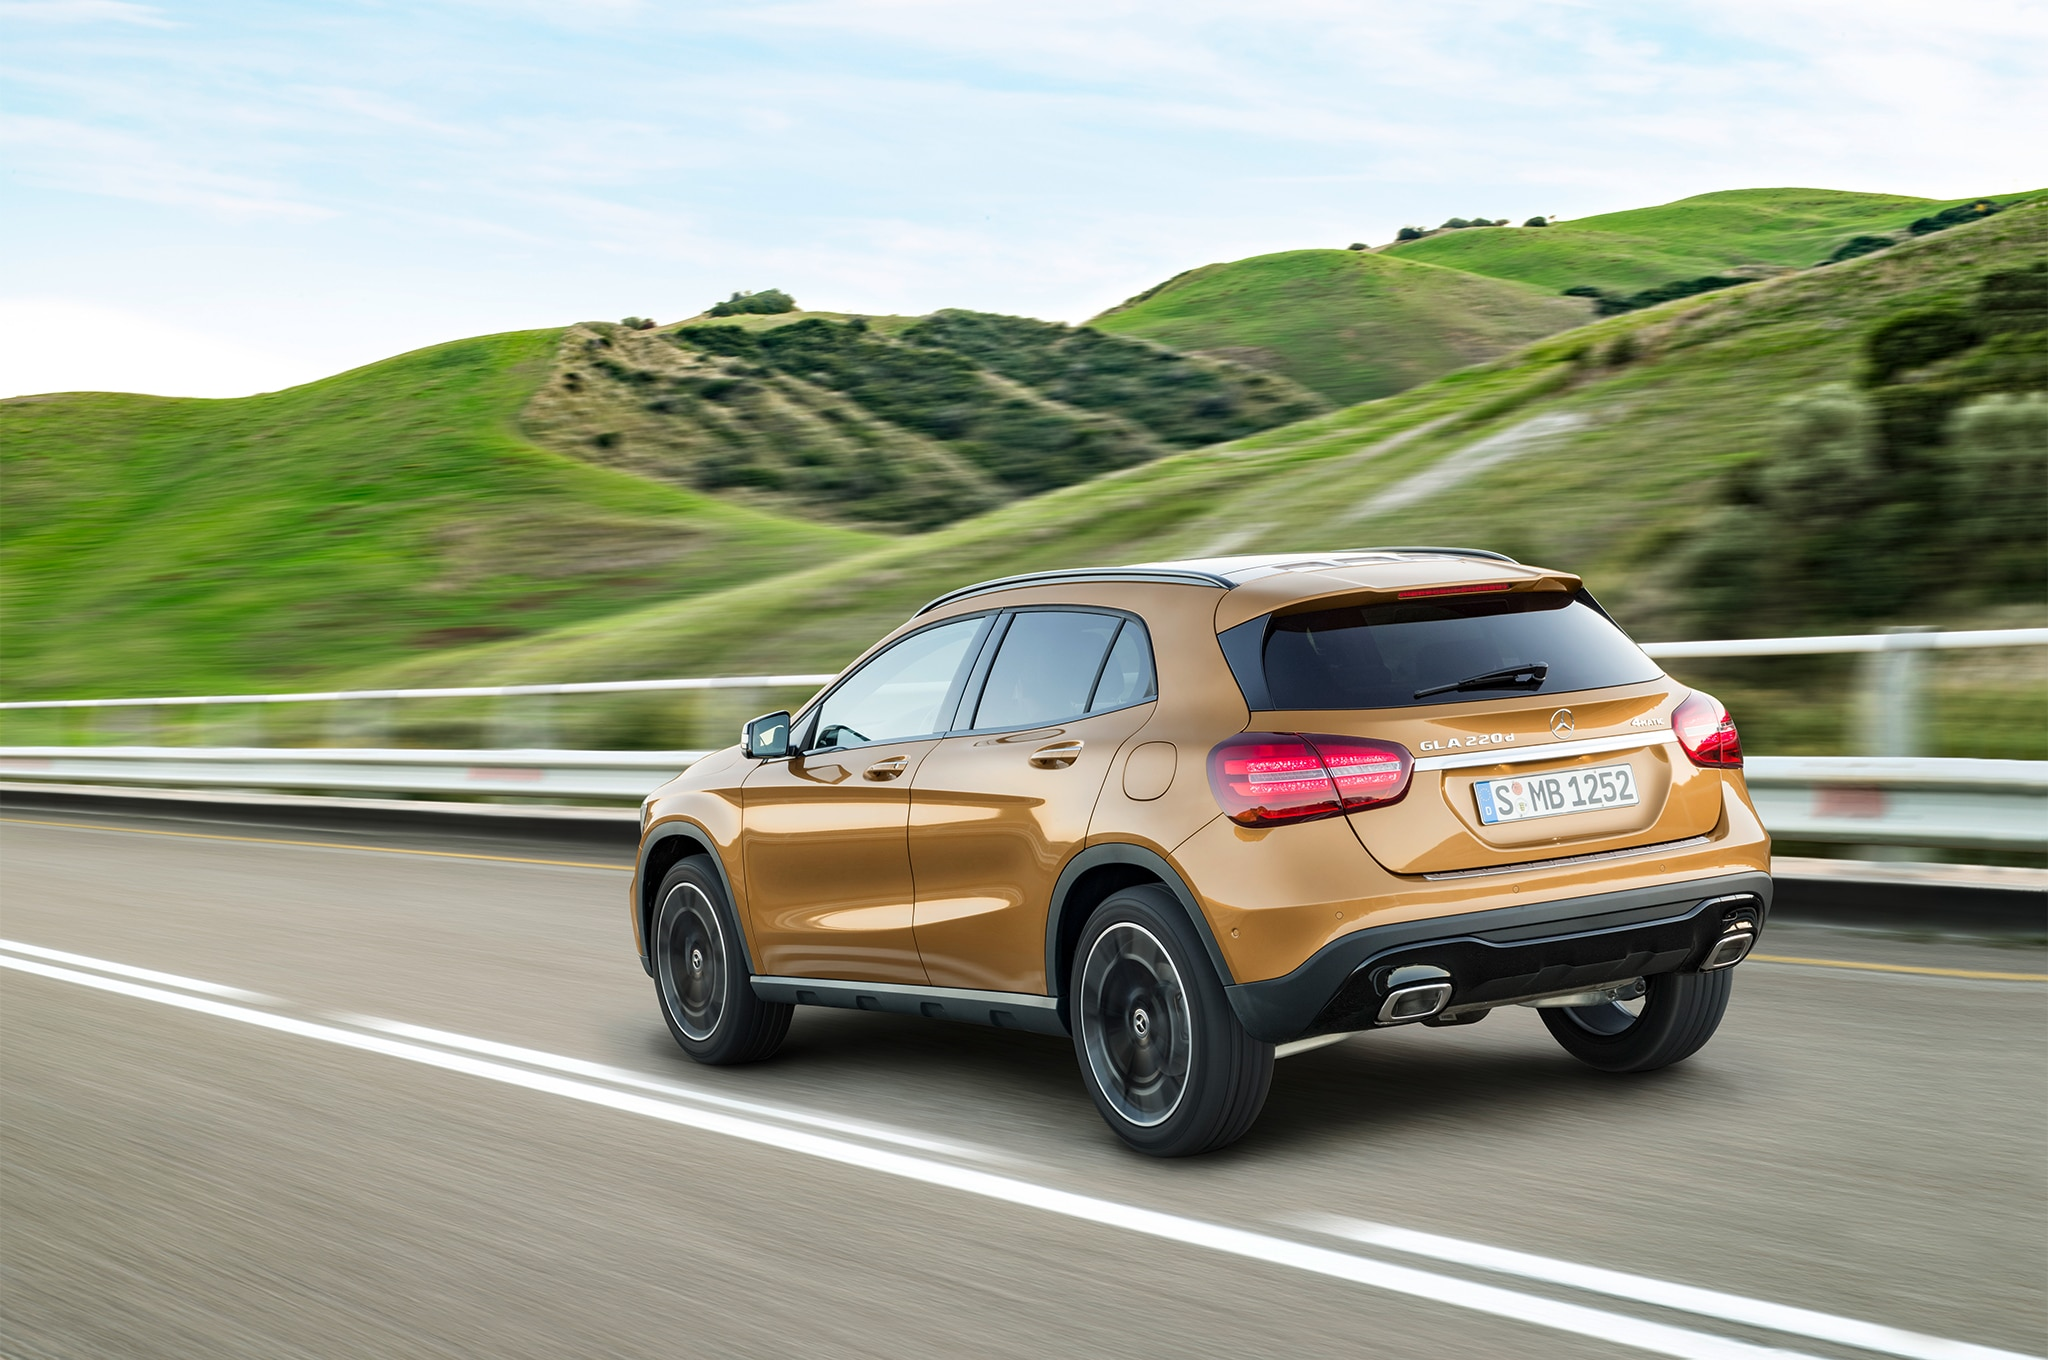 2018 Mercedes Benz Gla Class First Drive Review Automobile Magazine Mb Quart Crossover Wiring Diagram As Well Land Rover Discovery The